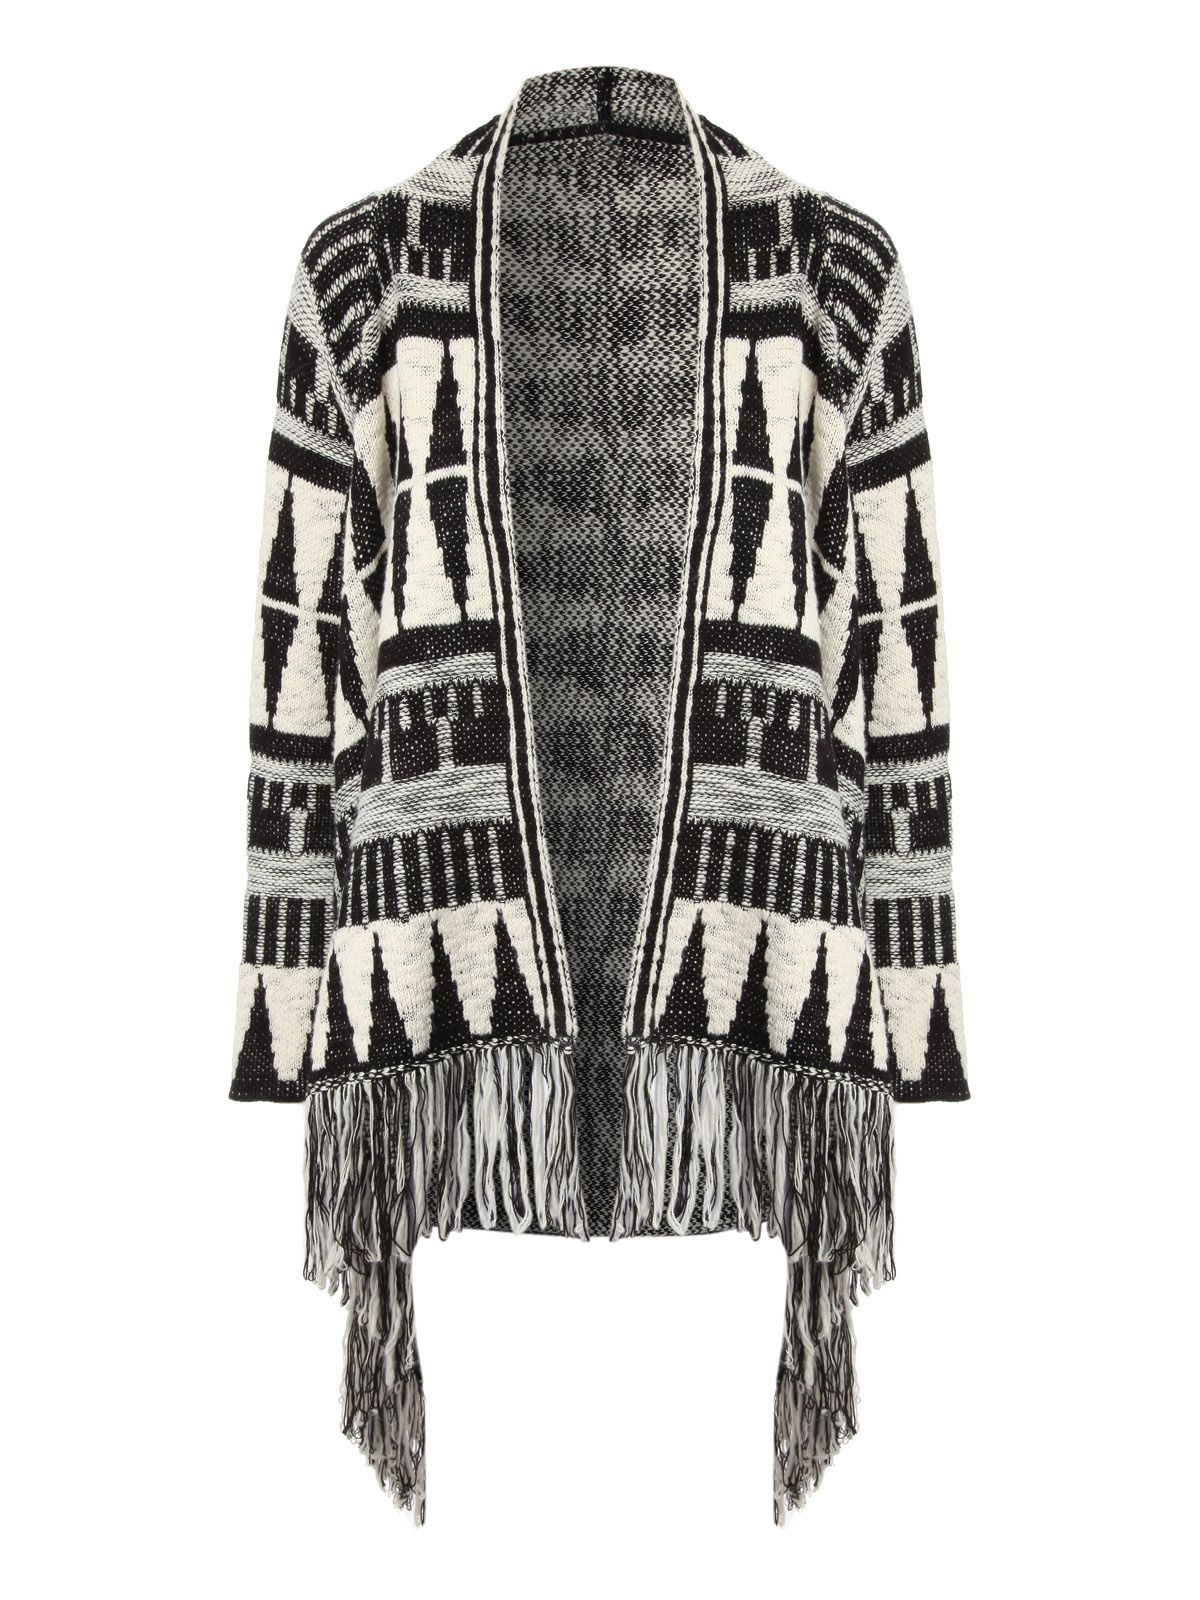 Jane Norman Aztec Fringed Cardigan Black